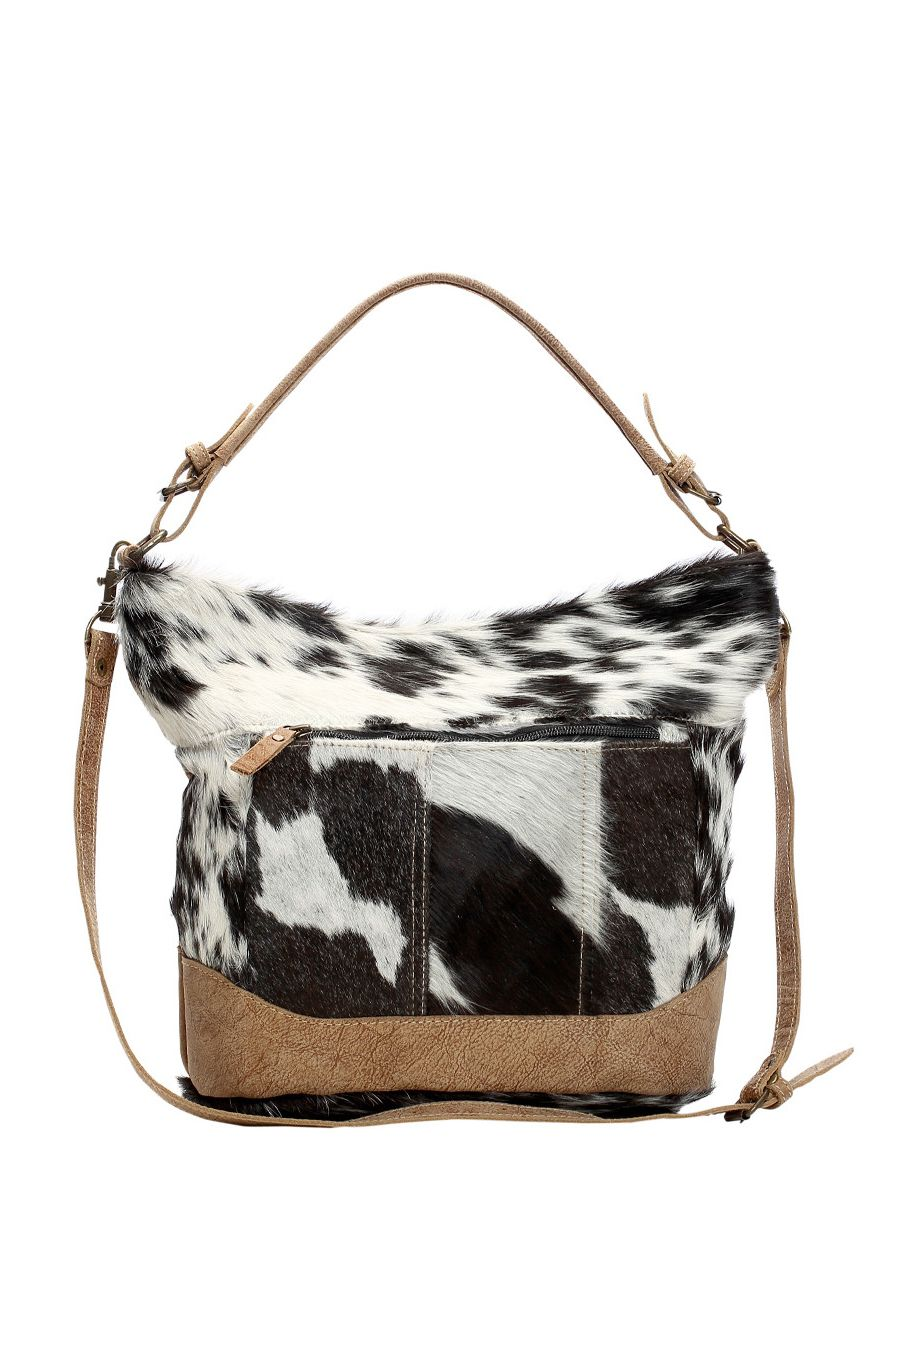 Myra Bag Dual Strap Cow Print Bag Shoulder Bag Cowhide Purse Cowhide Bag Find new and preloved myra bag items at up to 70% off retail prices. myra bag dual strap cow print bag